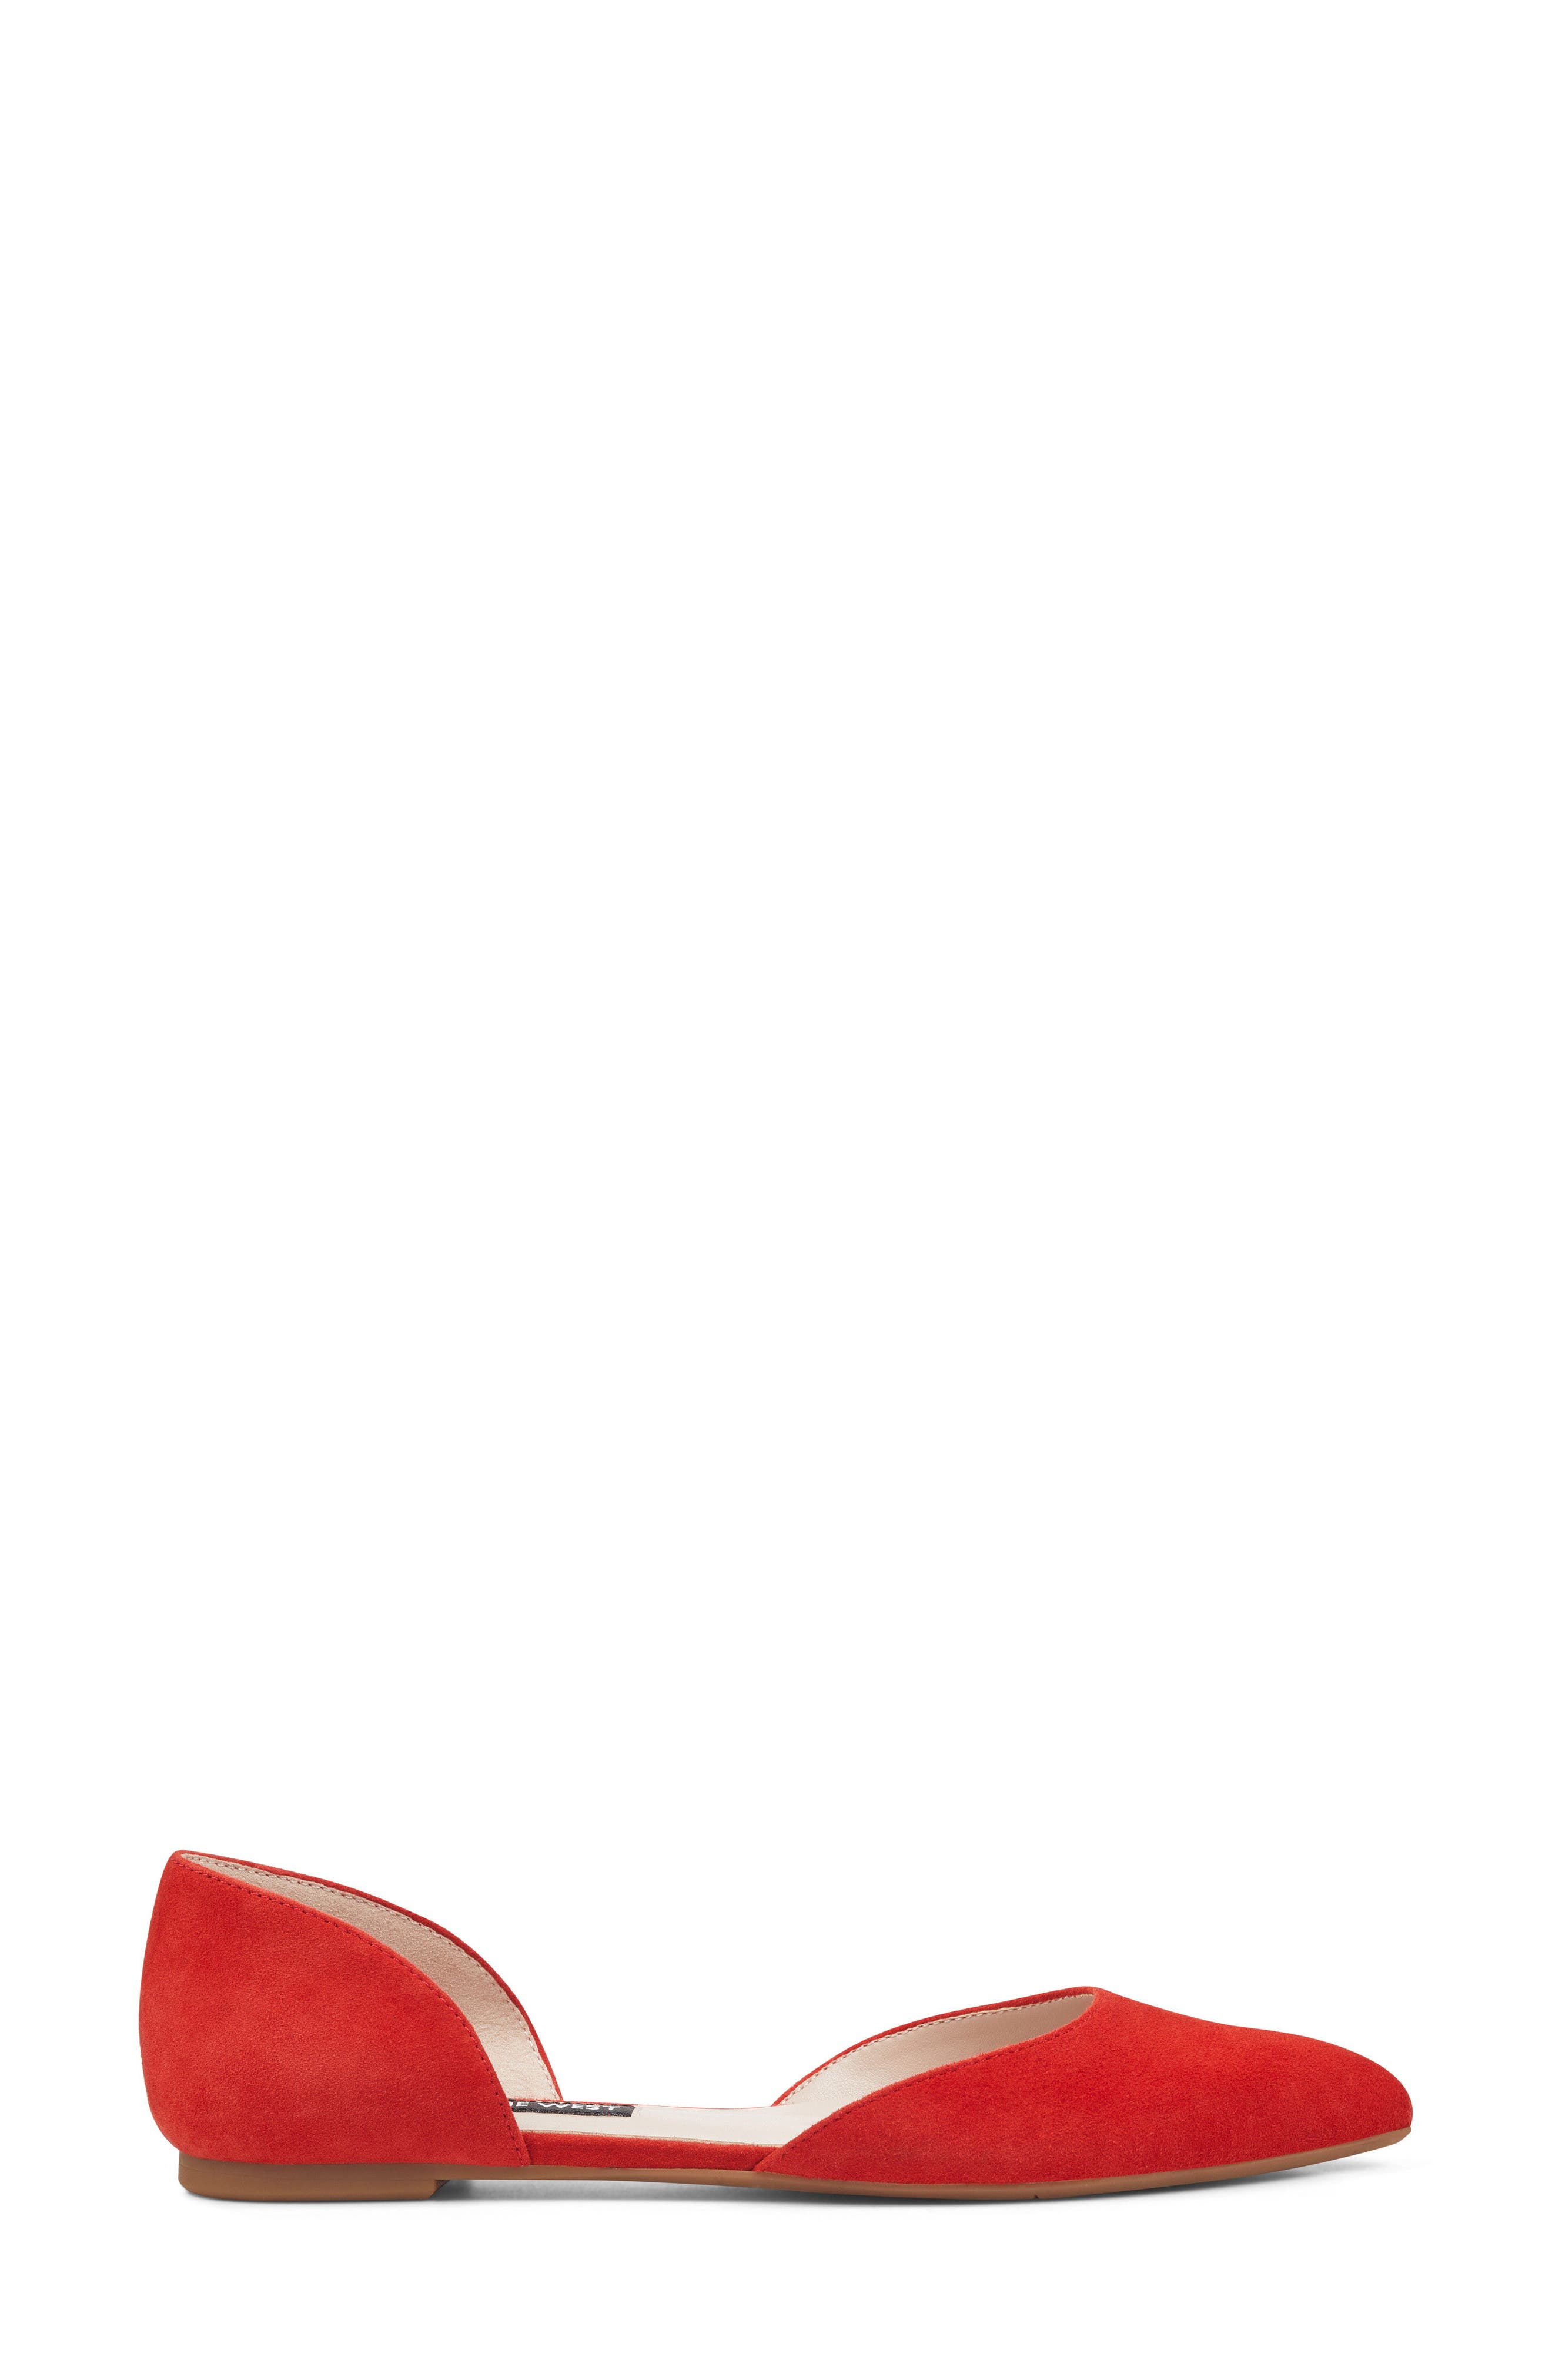 NINE WEST, Starship d'Orsay Flat, Alternate thumbnail 3, color, RED SUEDE